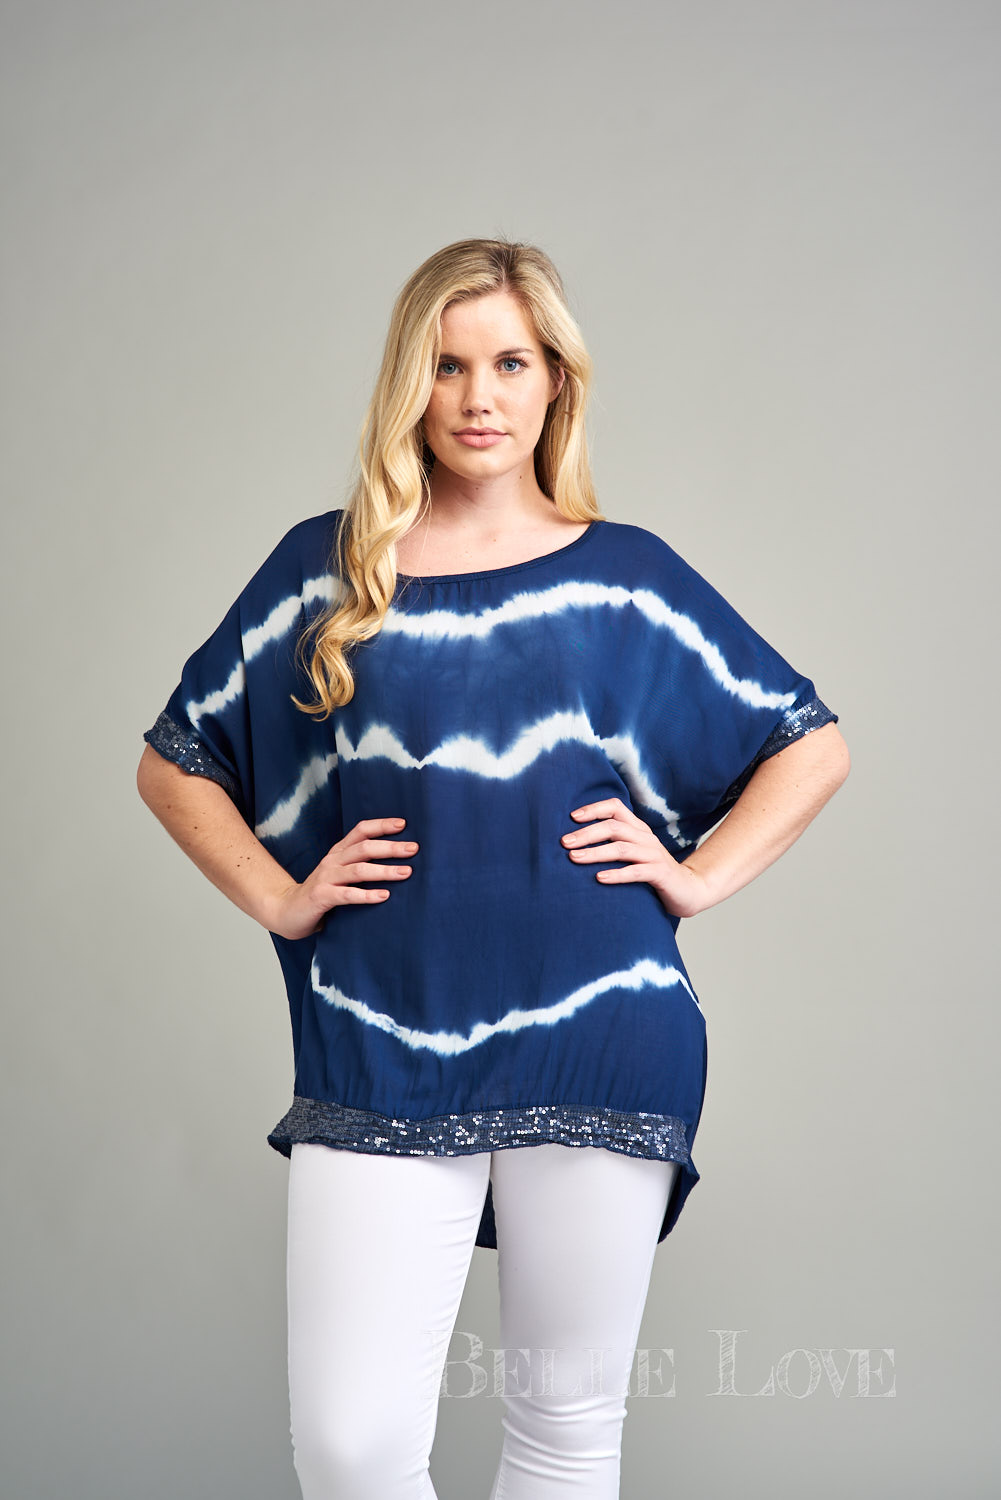 Belle Love Italy Camilla Tie-Dye Top